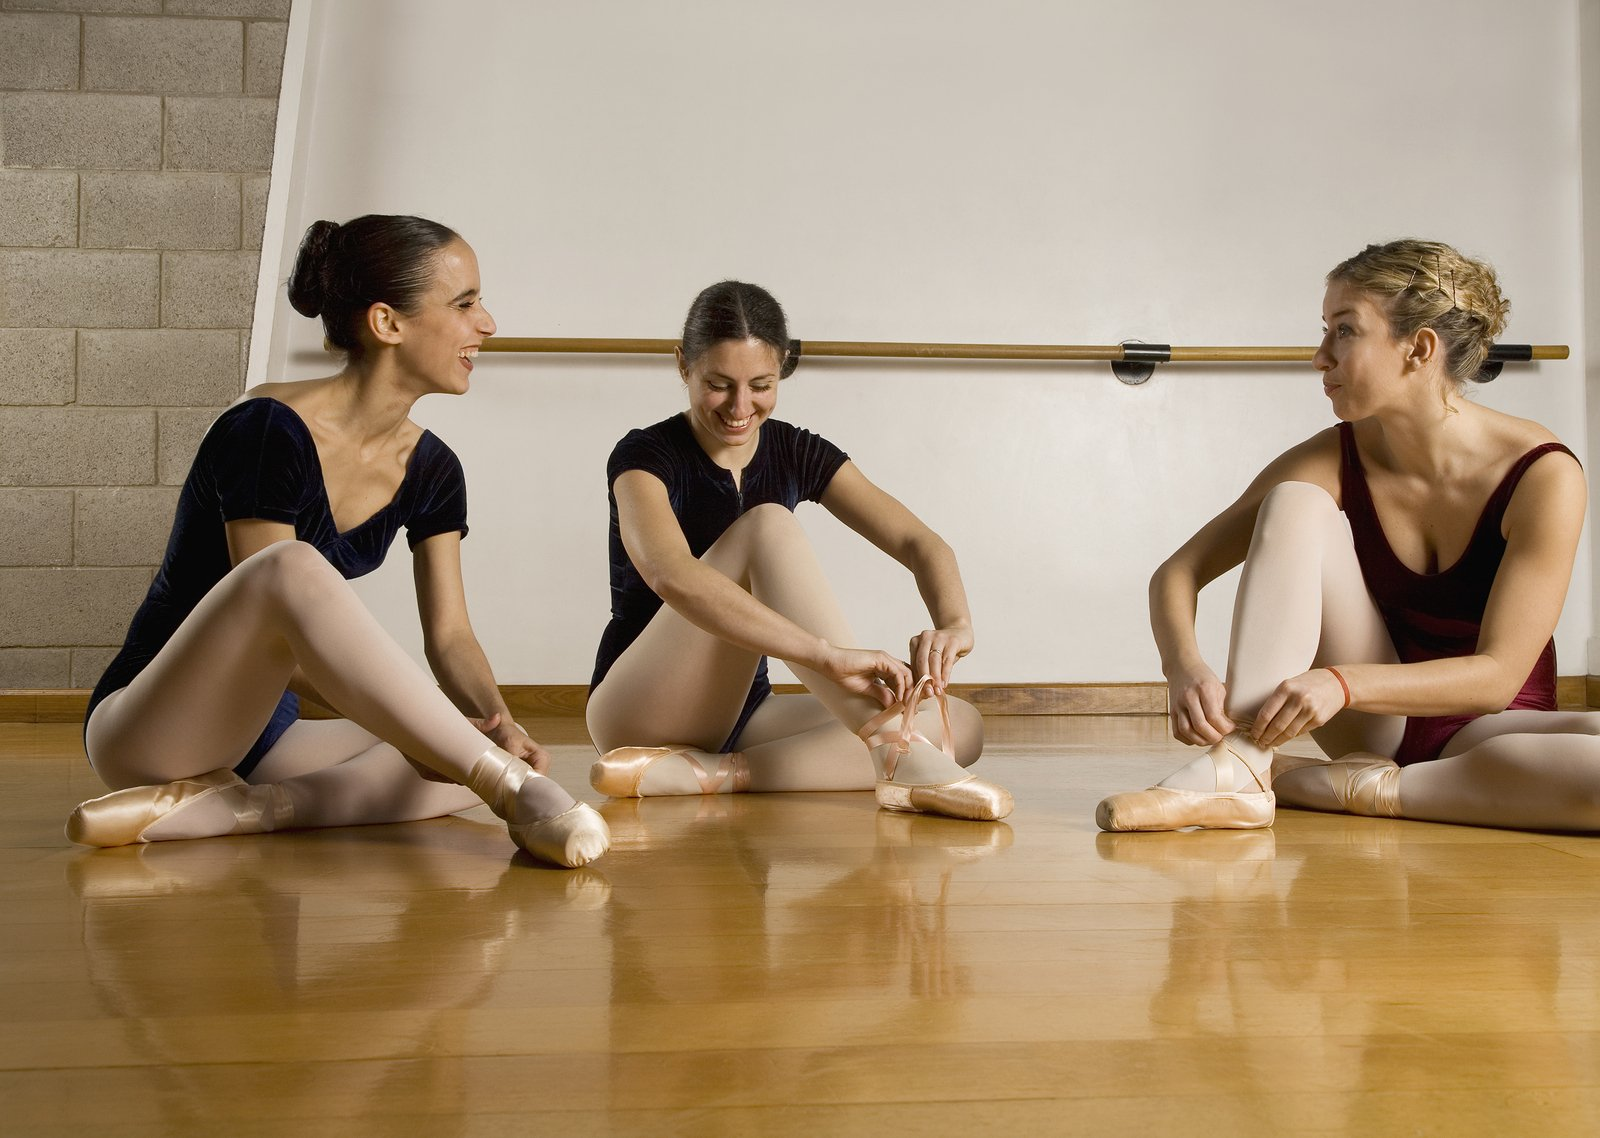 hispanic women ballet dancers talking while tying pointe shoes